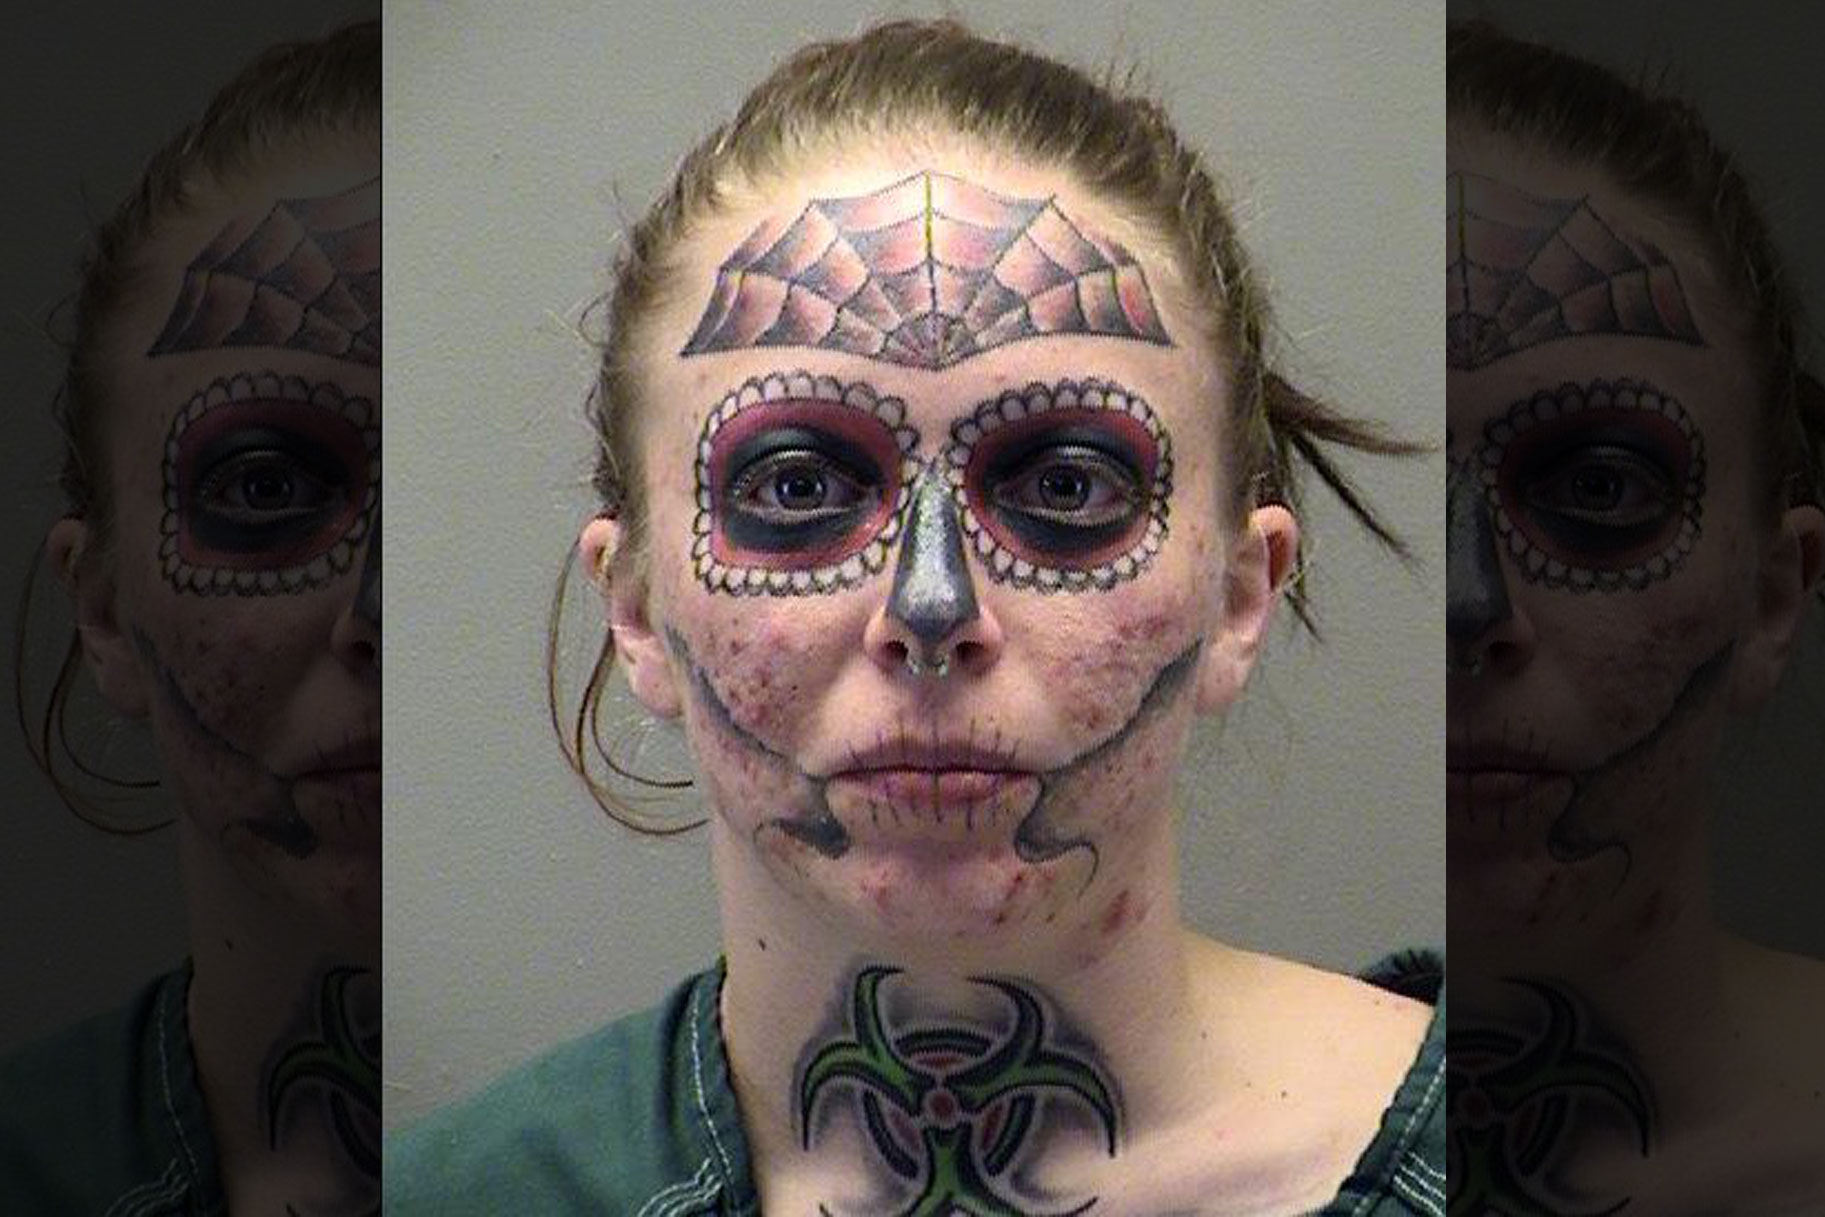 82e6347c09a82 Woman's 3rd Arrest In 5 Months Means Her Spooky Face Tattoo Can Go Viral  Yet Again